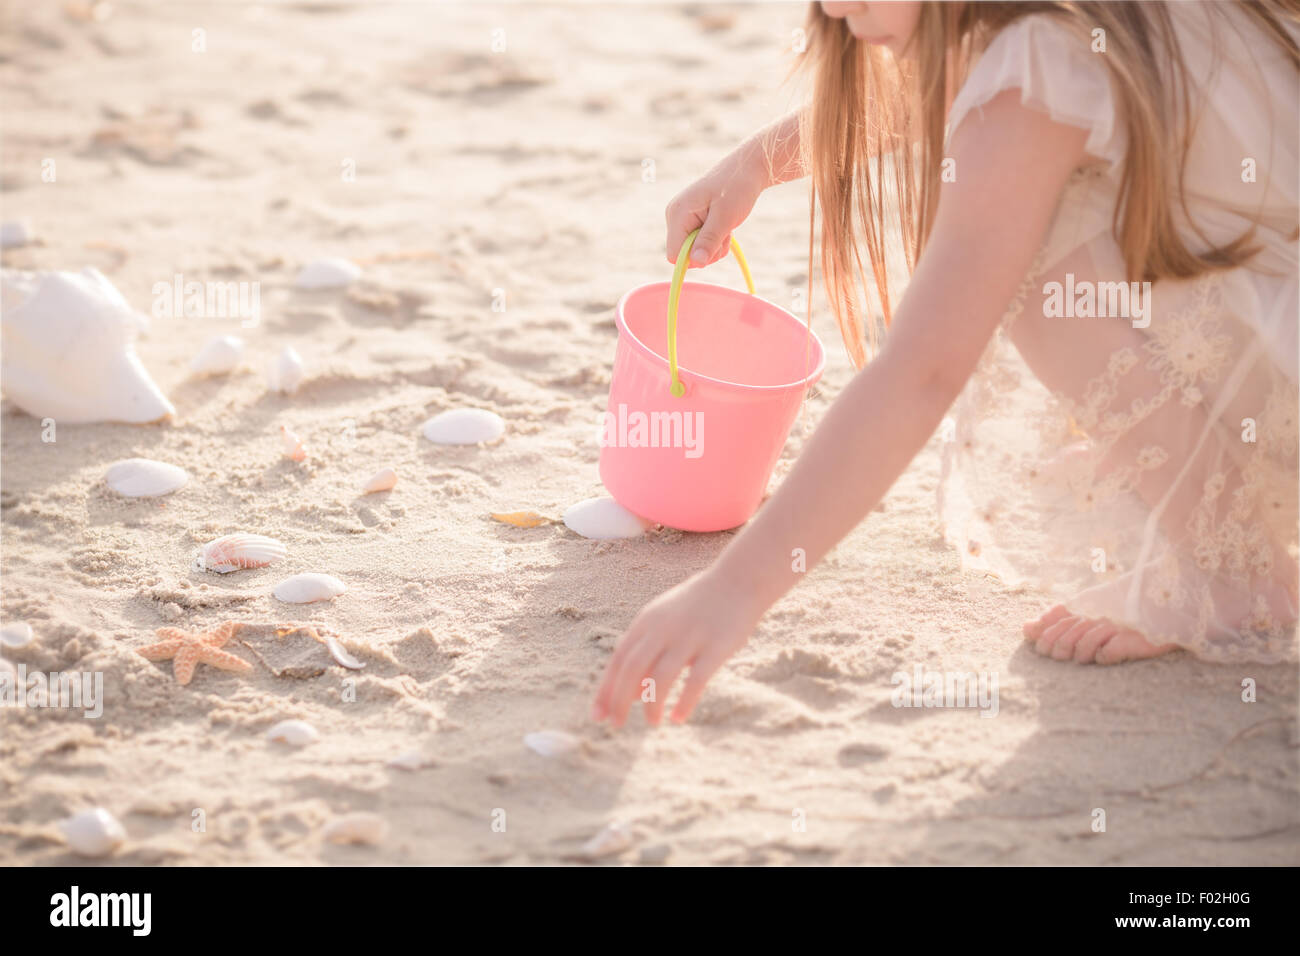 Girl collecting seashells in a bucket - Stock Image